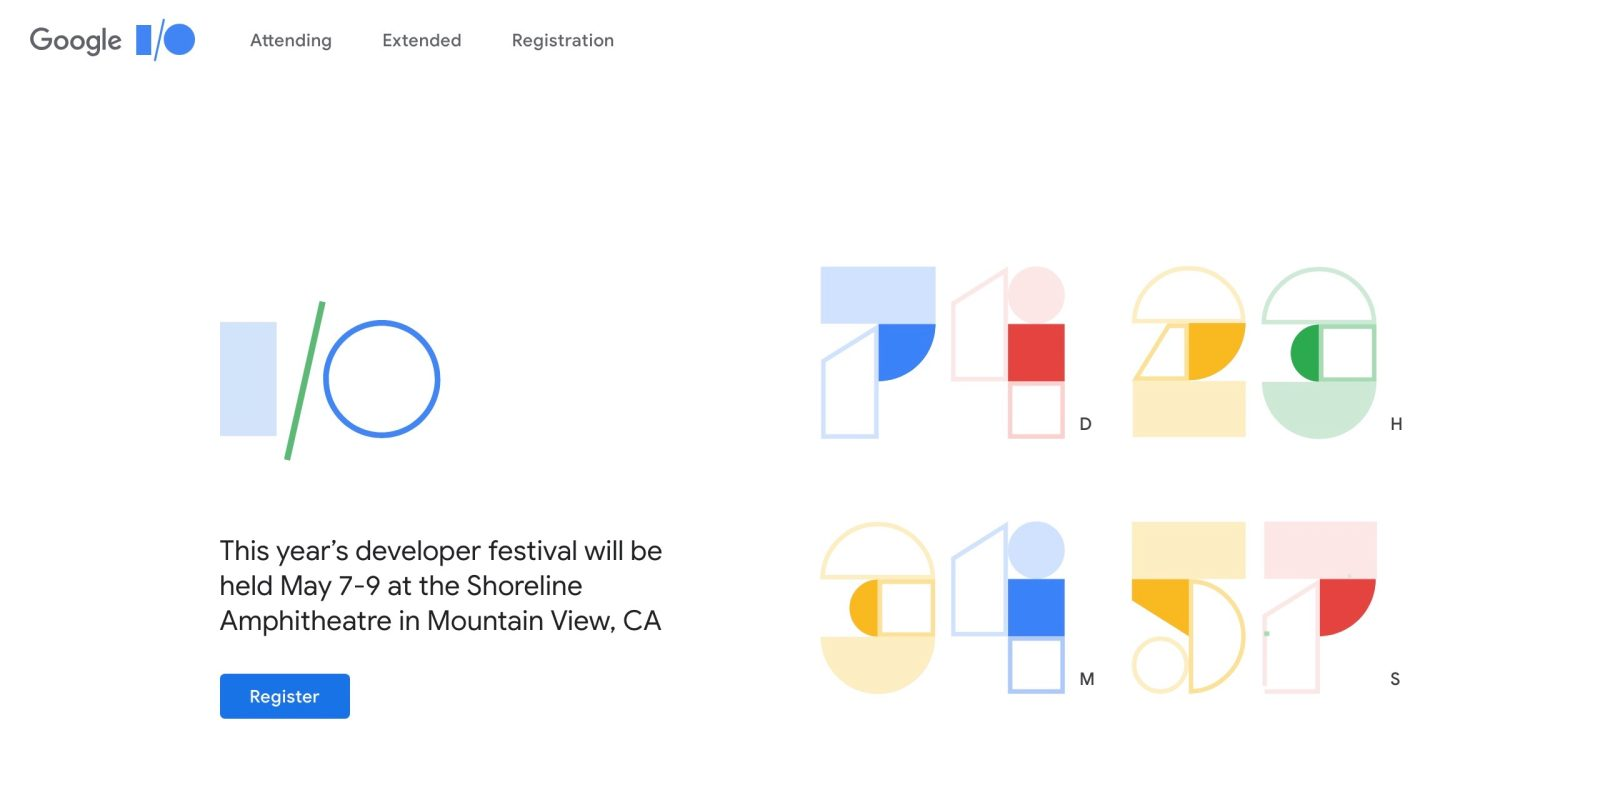 Google I/O 2019 applications now open w/ drawing on Feb 28th